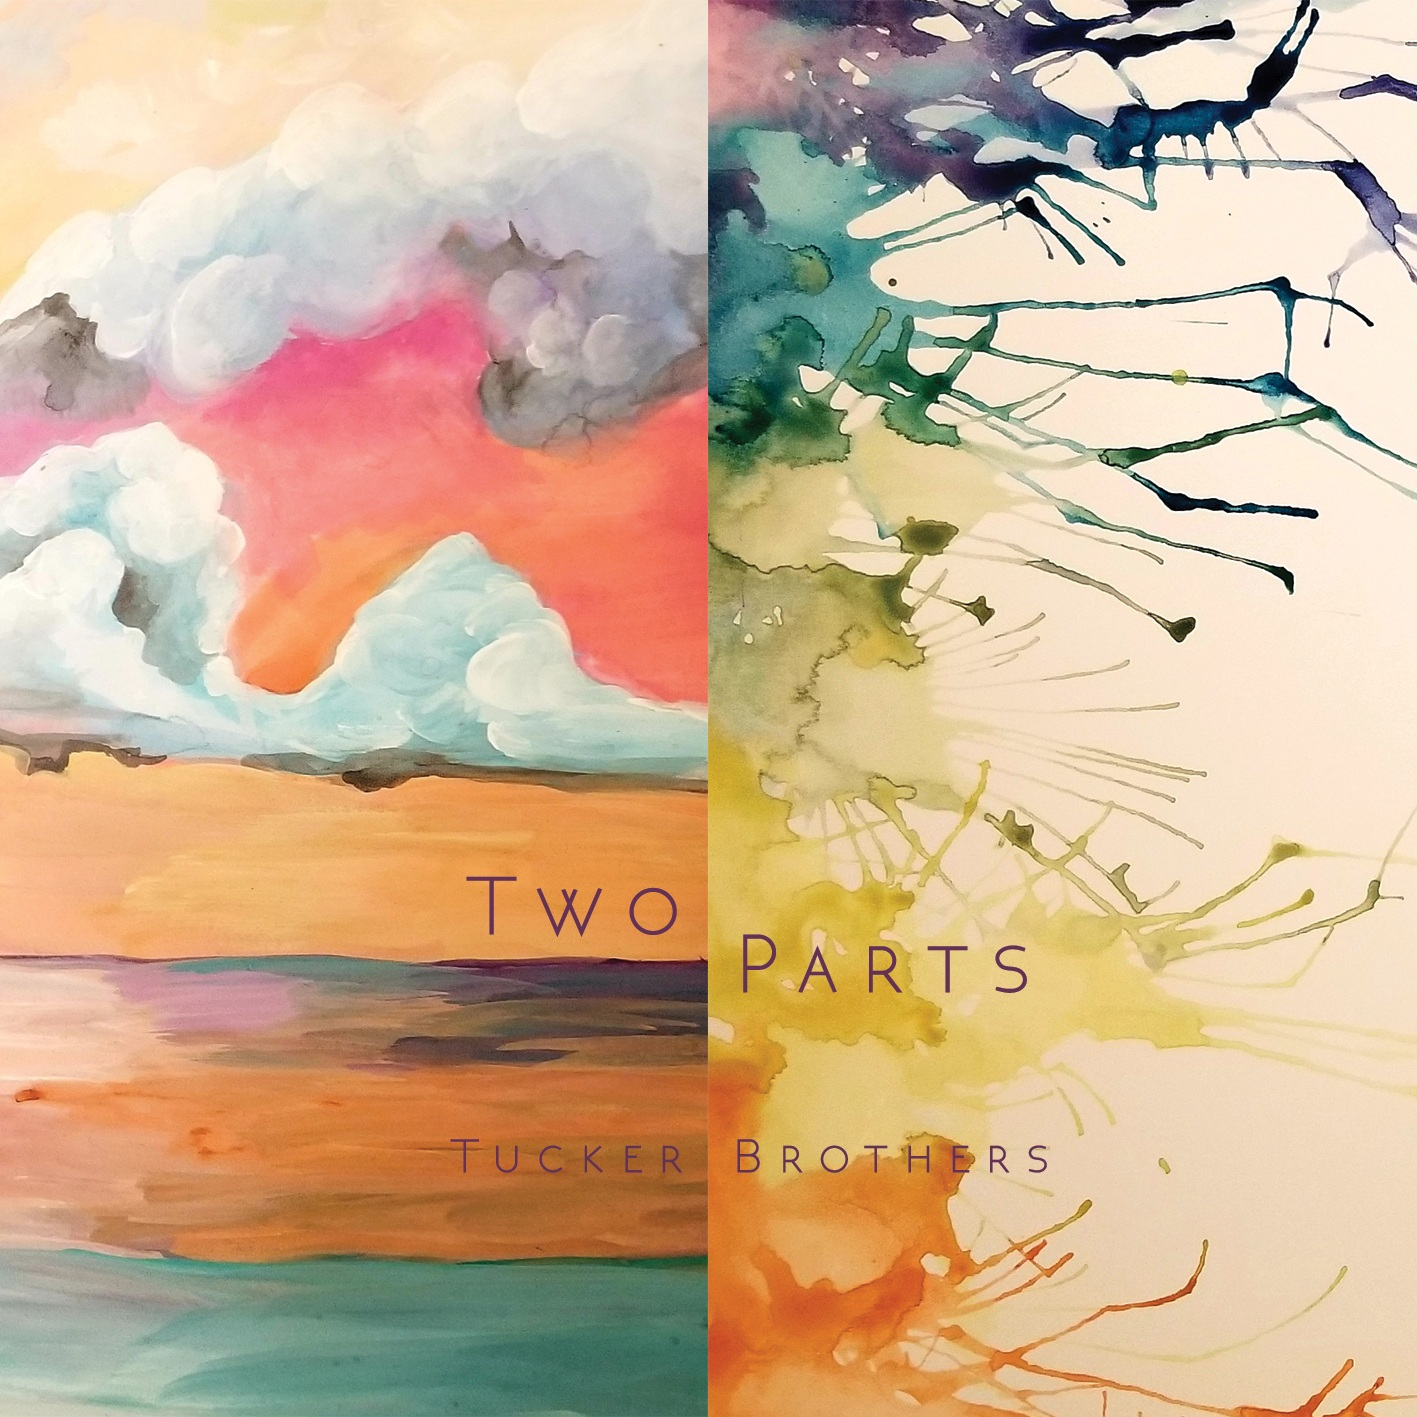 """Tucker Brothers - The title track, """"Two Parts"""", represents the essence of the music: duality of life, the two sides ofeach coin, respect for the past and future, and at the very core - the two brothers themselves.This record is deeply expressive, playful, curious, and places a uniquely equal emphasis oncomposition and improvisation."""